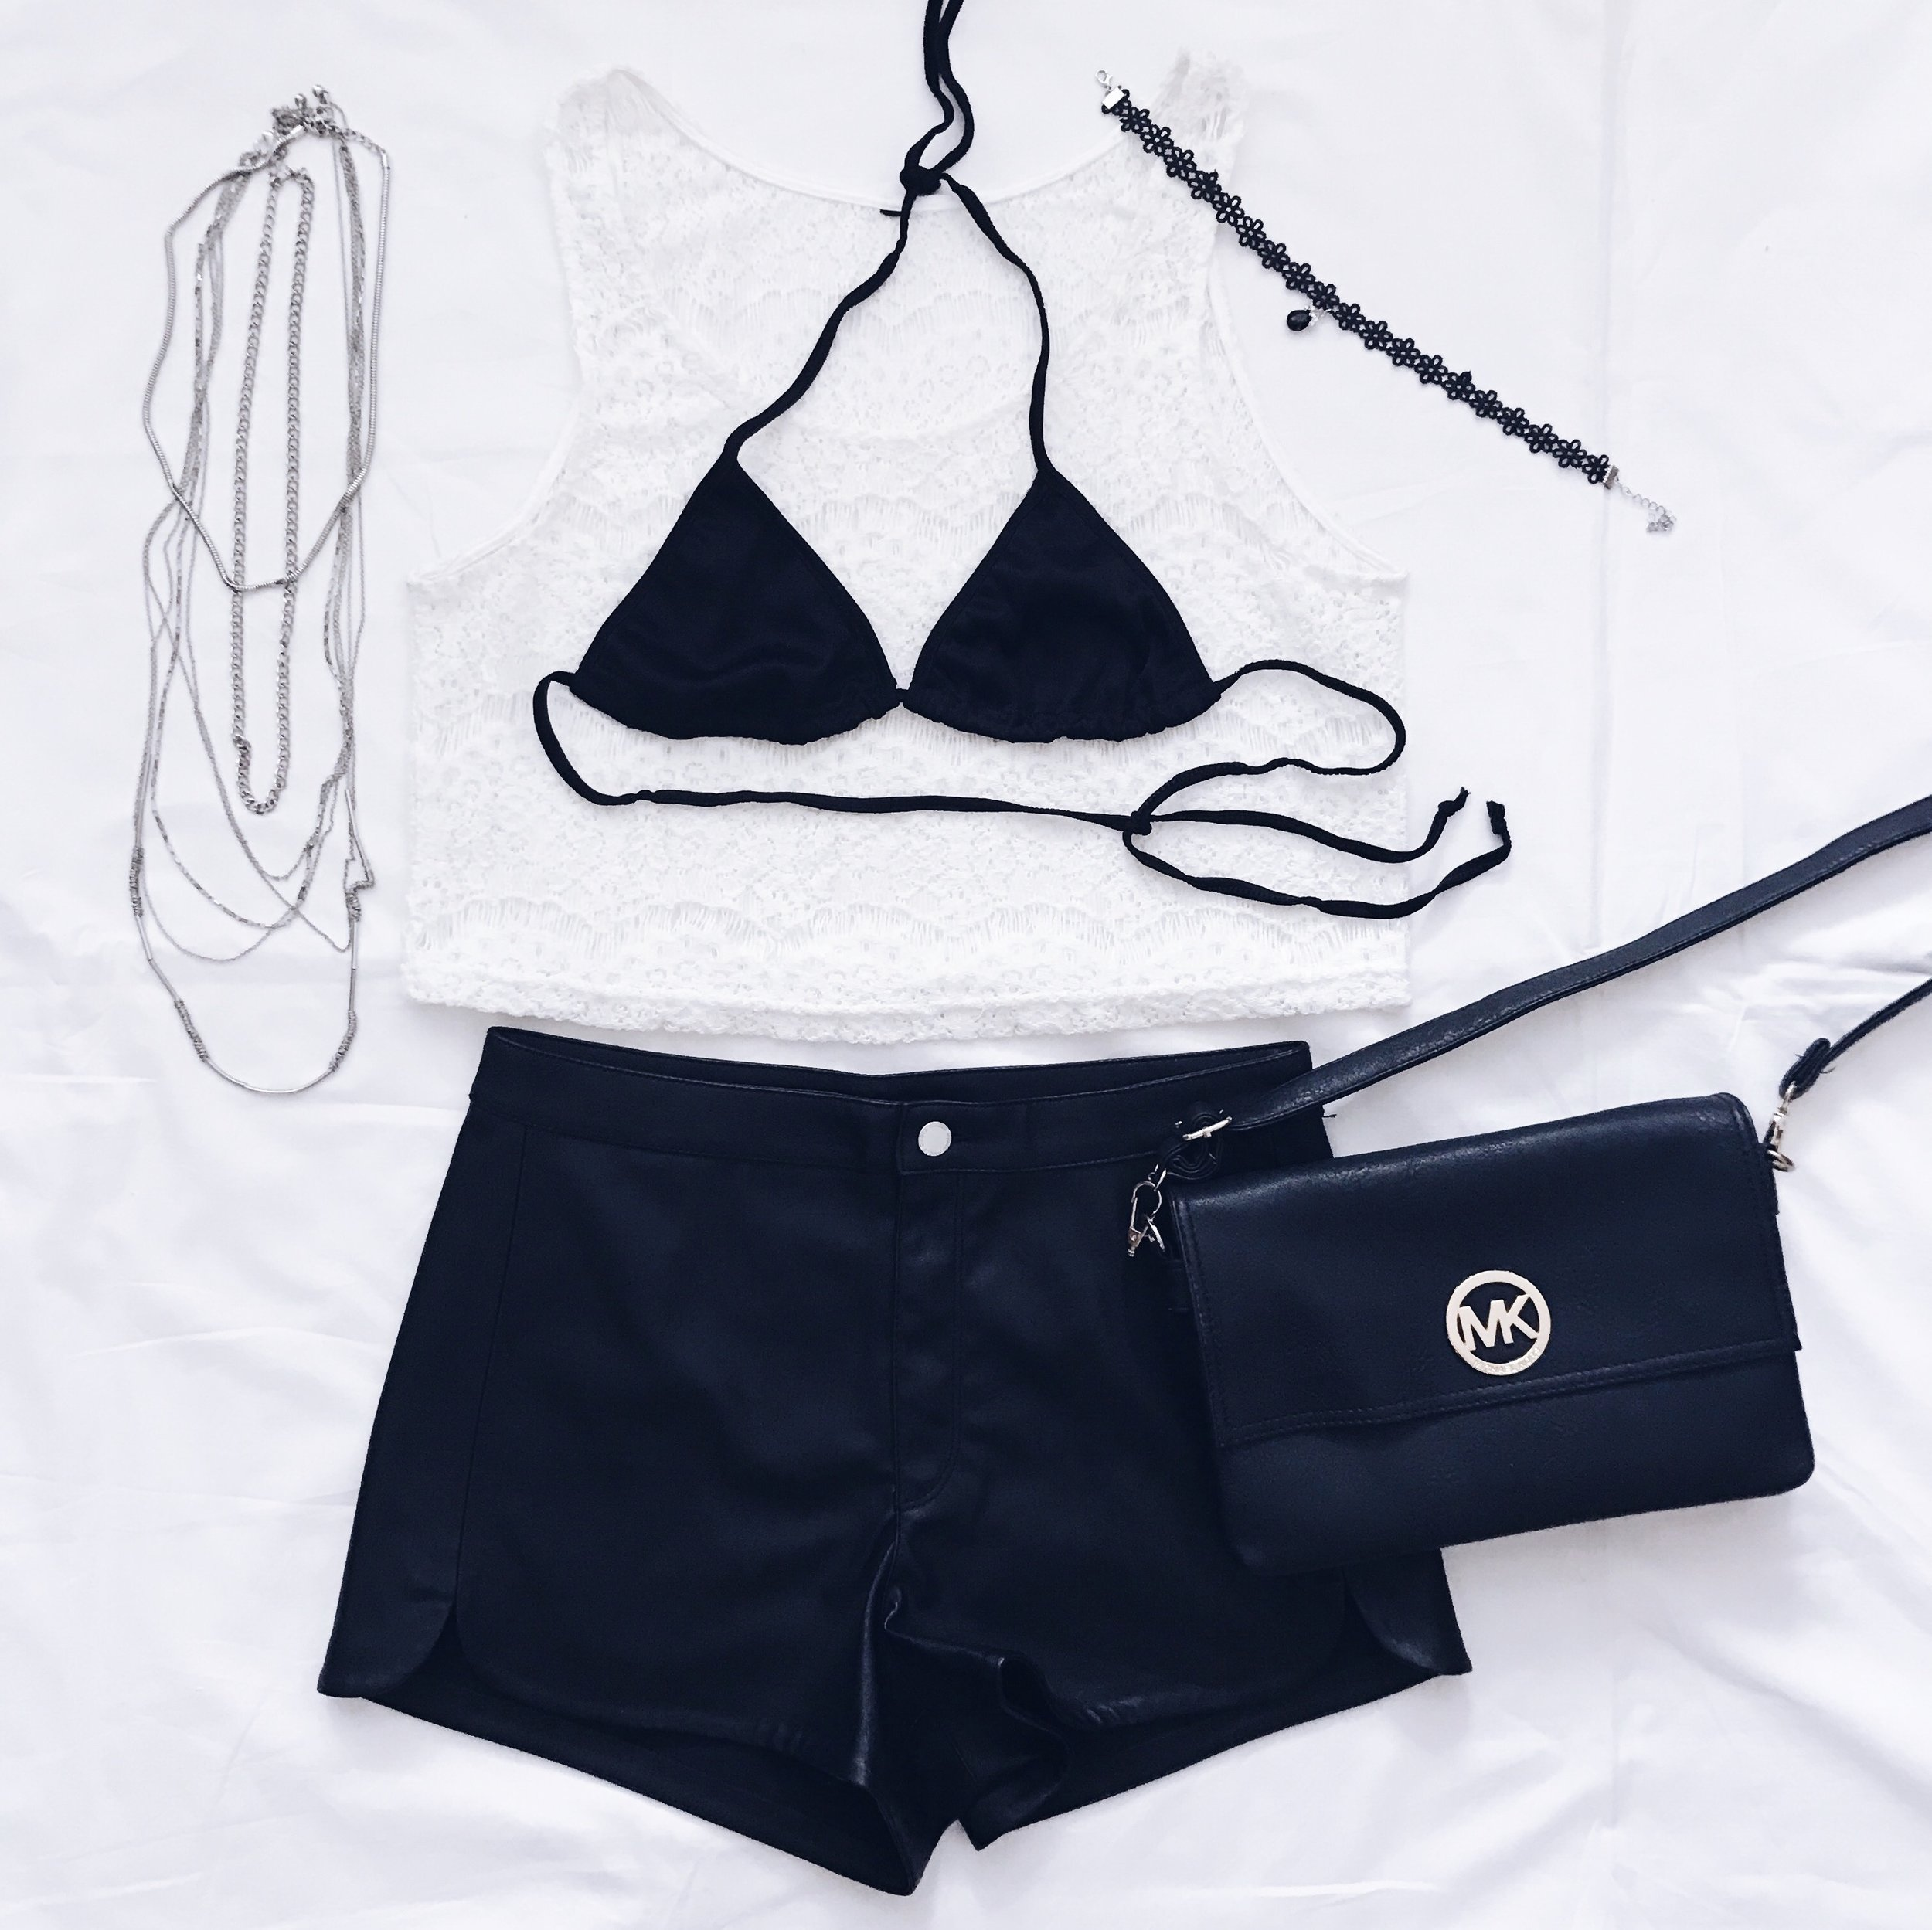 White Lace Crop Top: Terranova     Leather Shorts: H&M    Crossbody Bag: Michael Kors    Bikini Top: Asos    Necklace Set & Chain Necklace: H&M    Lace Crystal Choker: Amazon Fashion